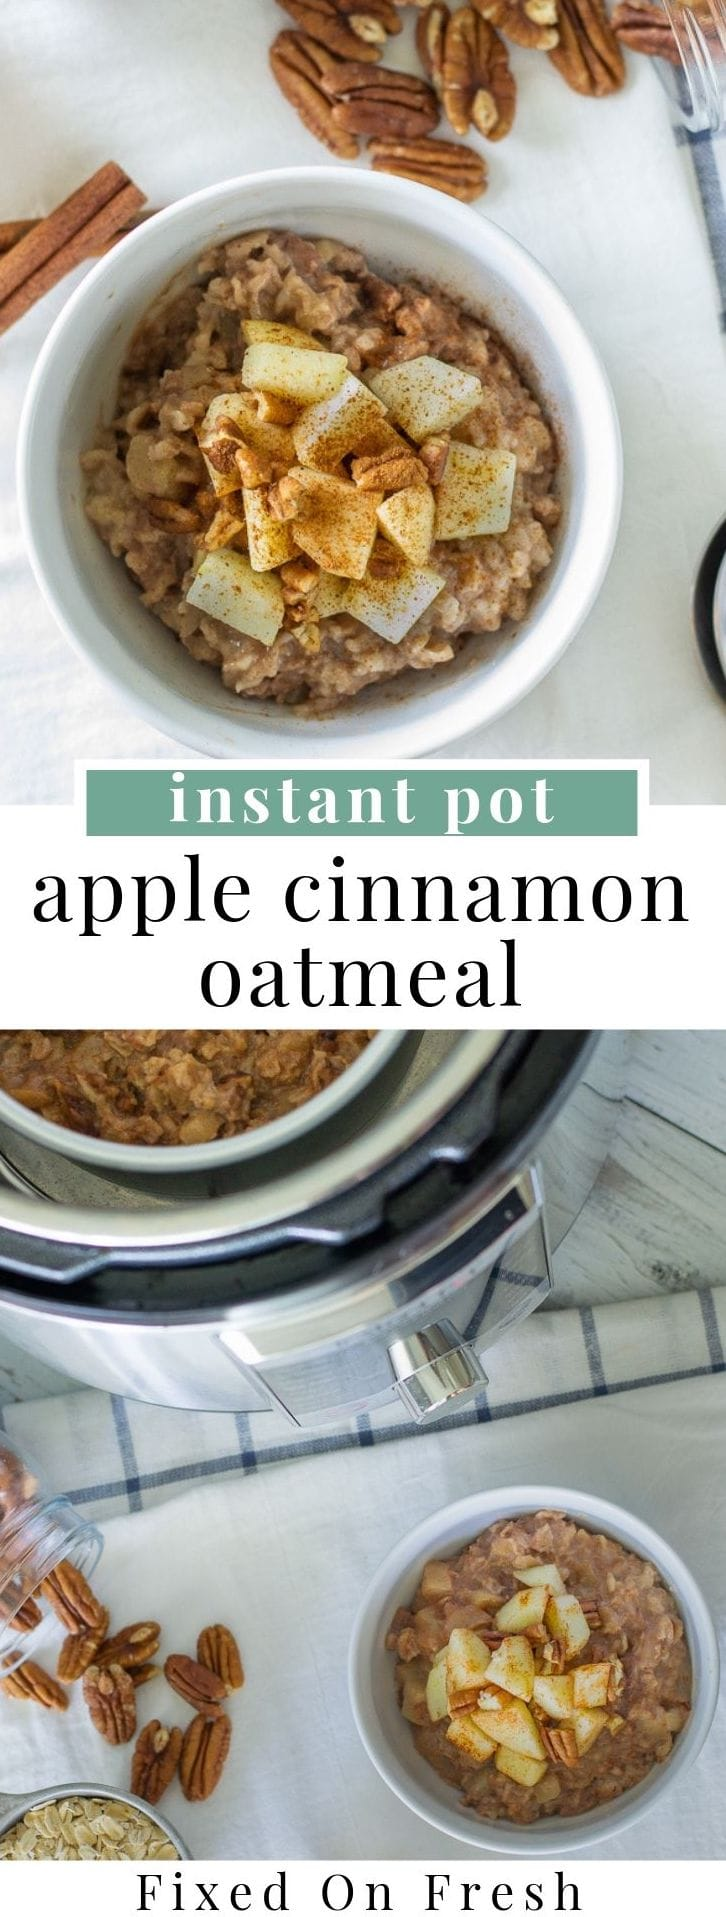 Apple cinnamon instant pot oatmeal is a great, set and forget breakfast that is healthy and delicious.